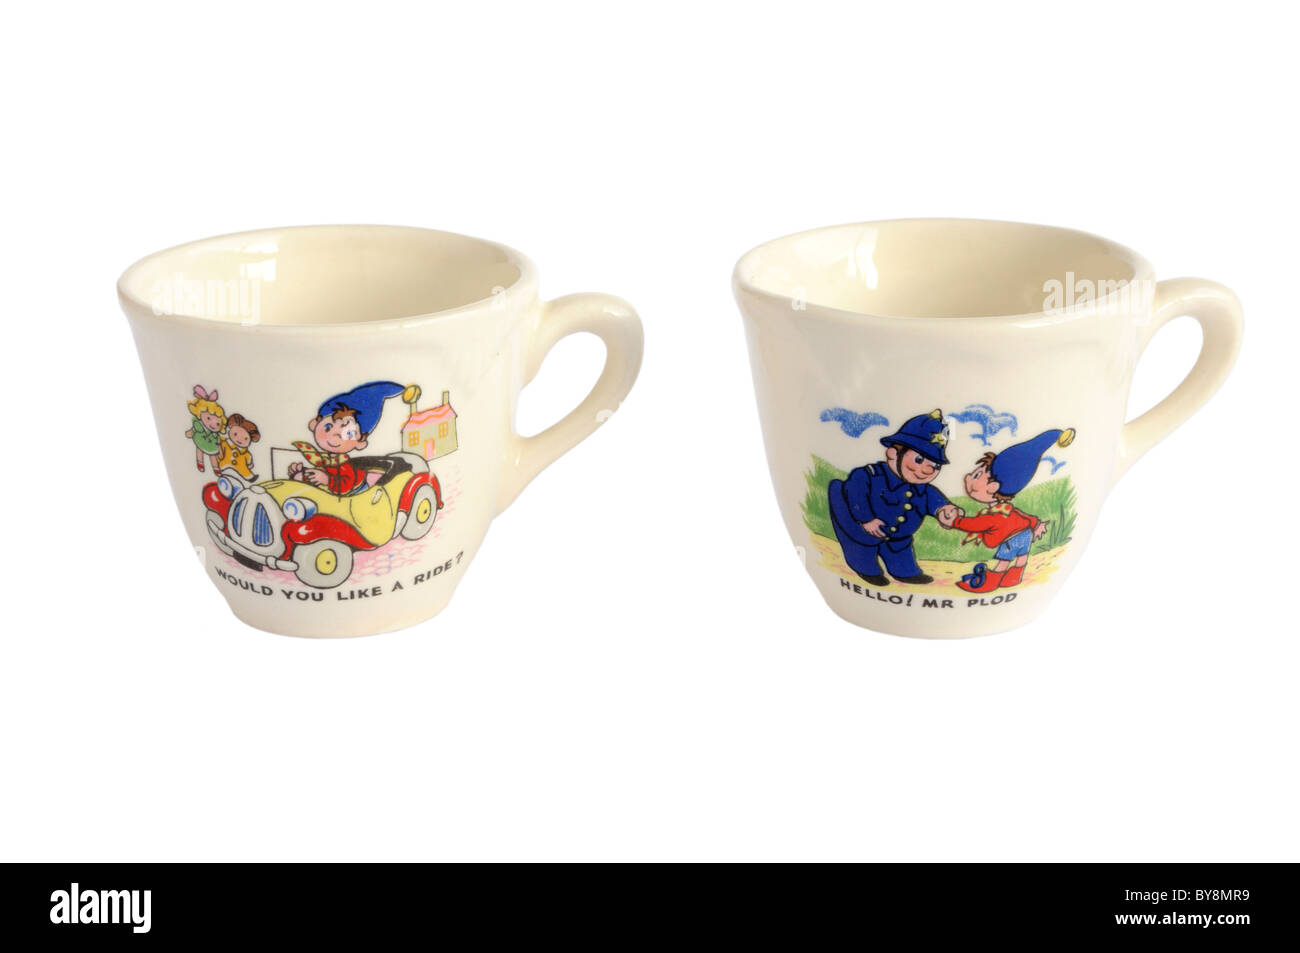 Cups from a Noddy doll's tea set - Stock Image